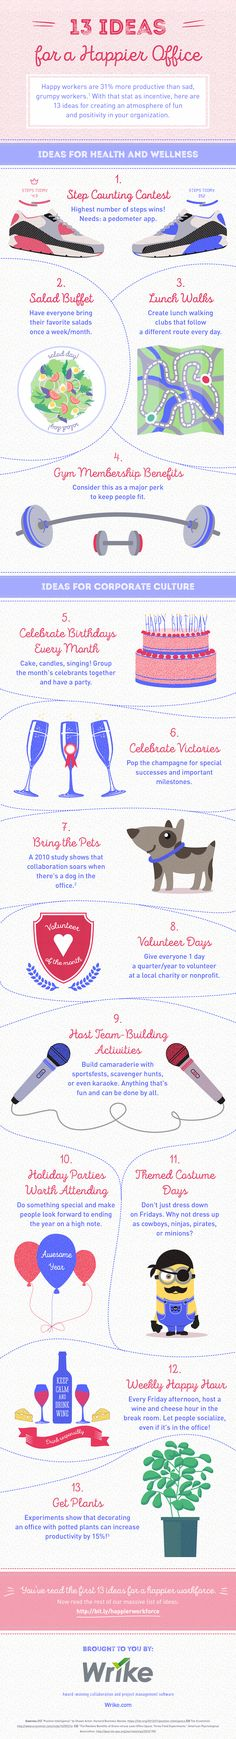 13 ideas for a happier office #infographic